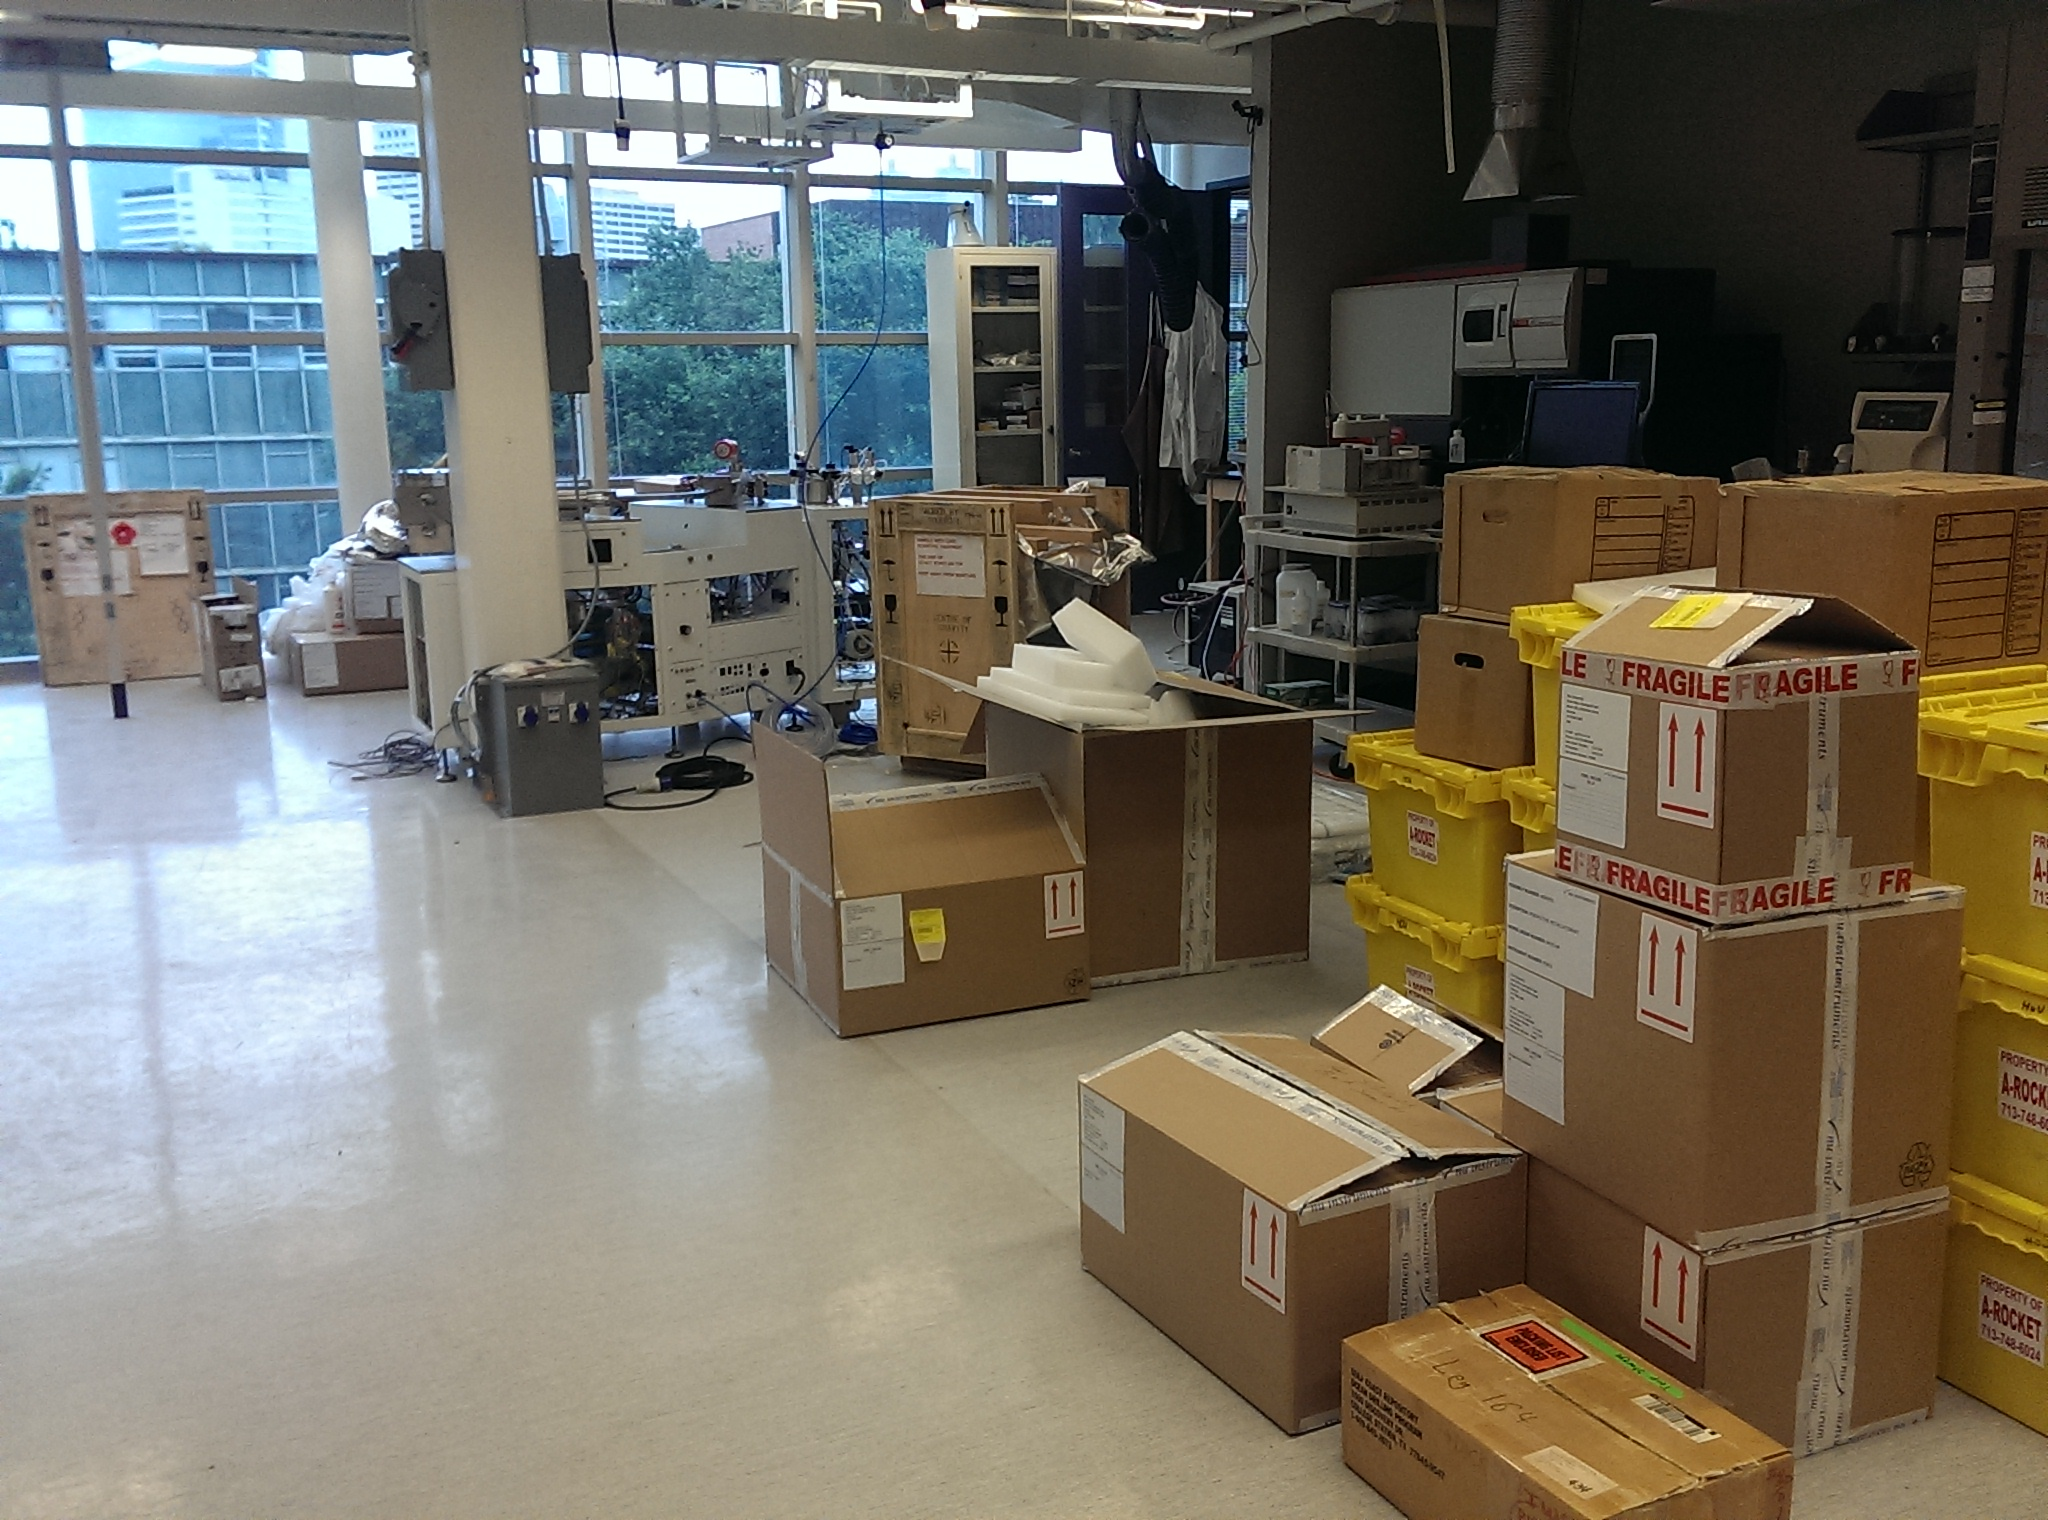 The rest of the lab, now full of boxes.